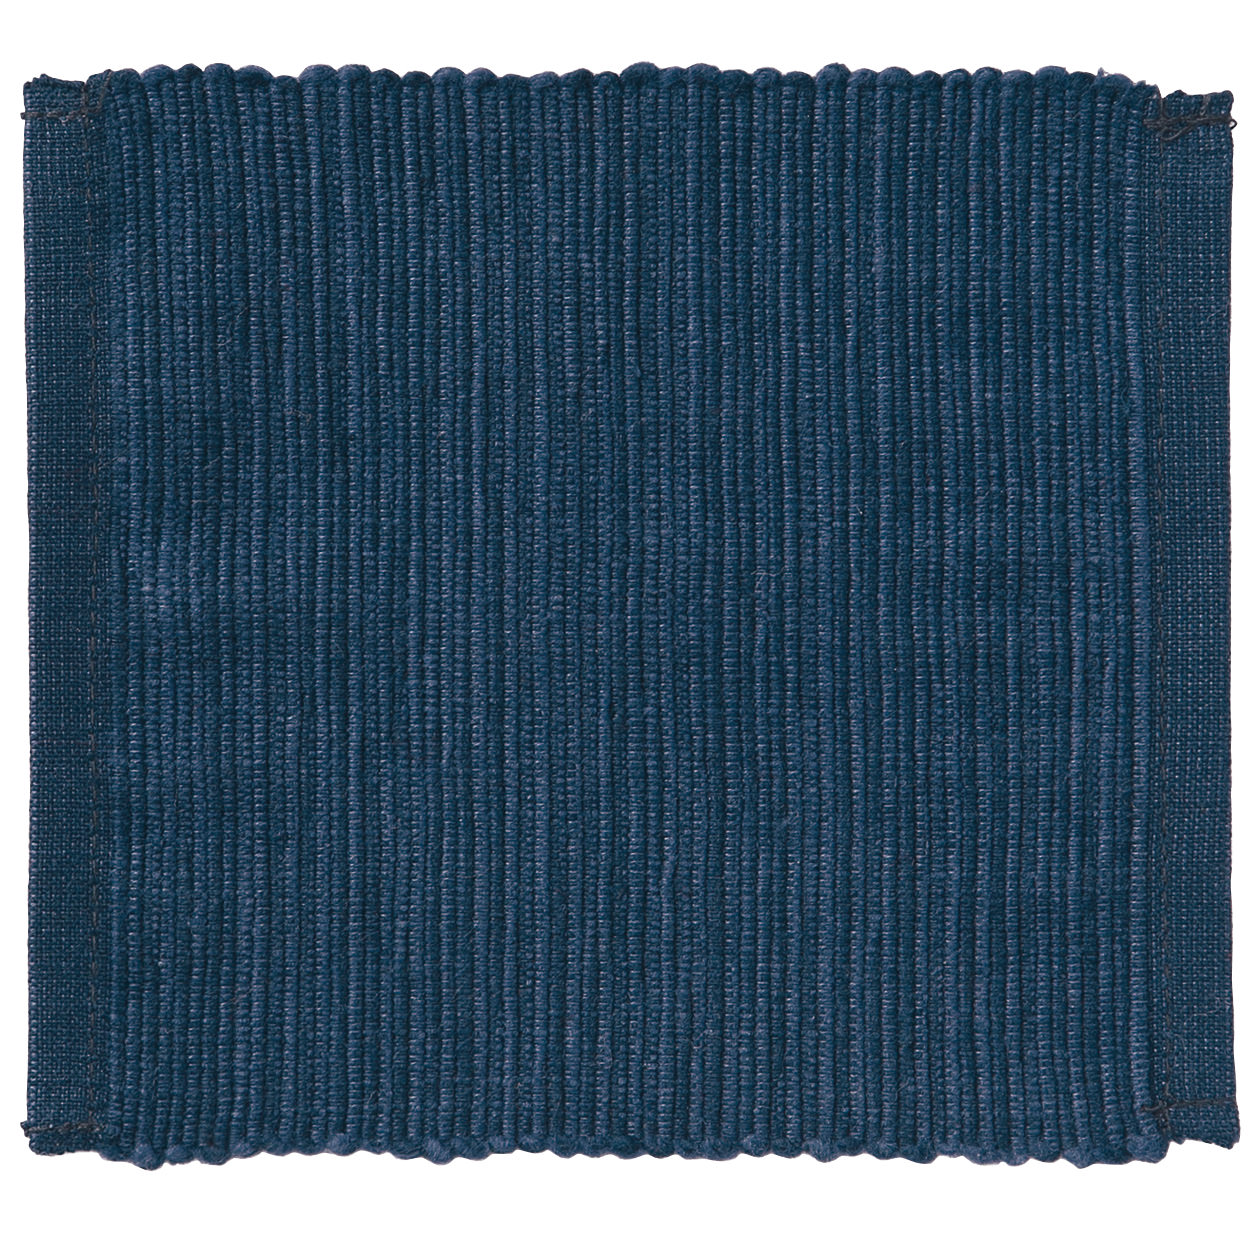 INDIAN COTTON HANDWOVEN COASTER / BLUE